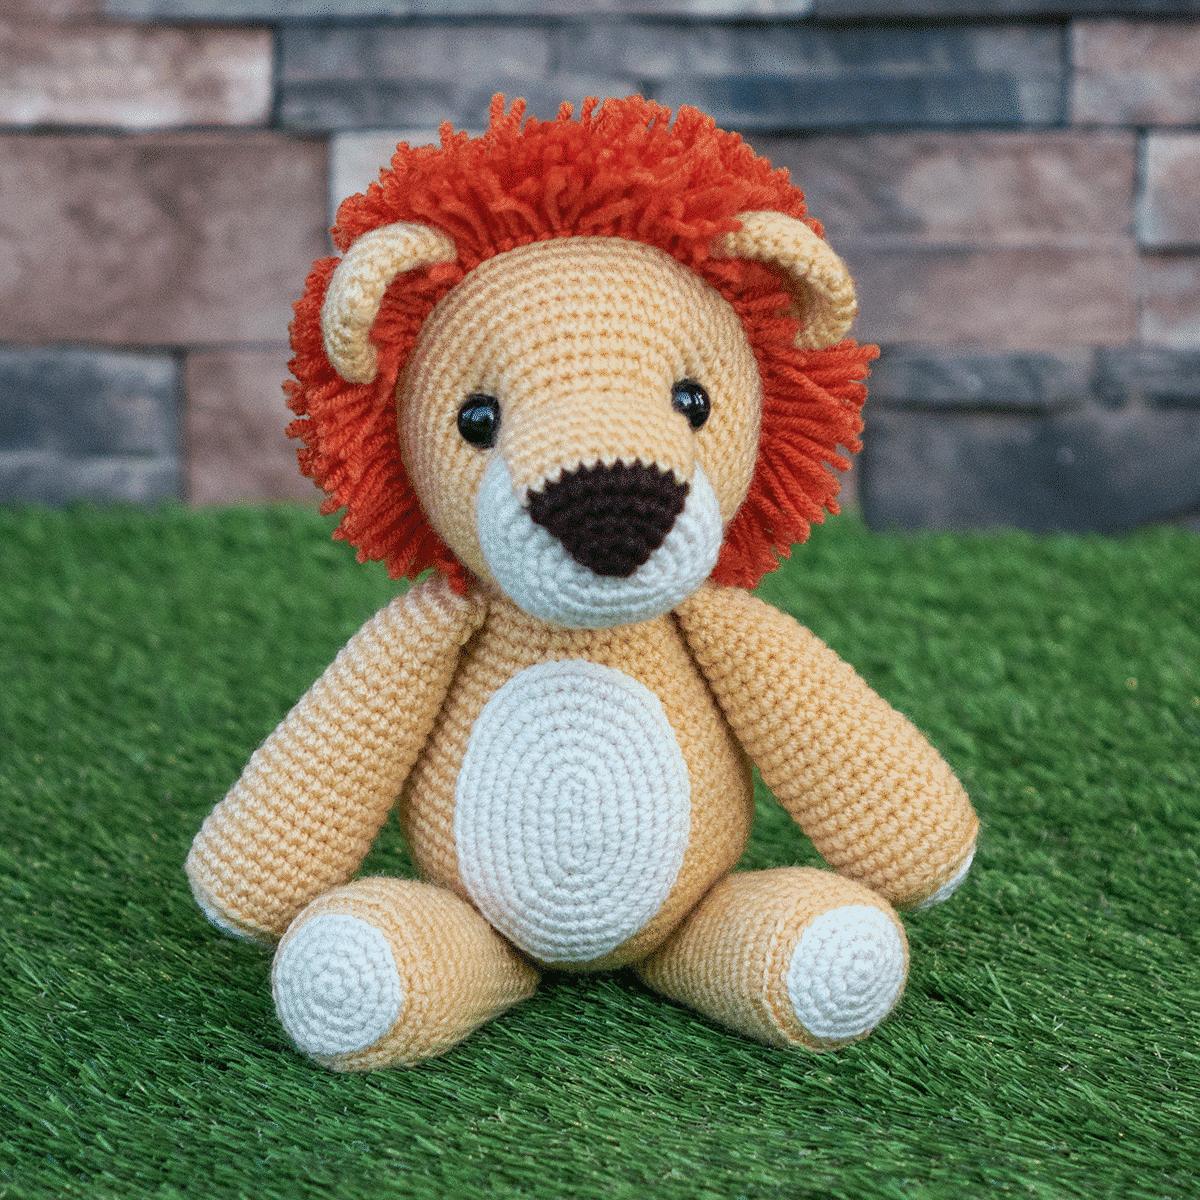 Simba Amigurumi Crochet Pattern - The Lion King | Crochet patterns ... | 1200x1200